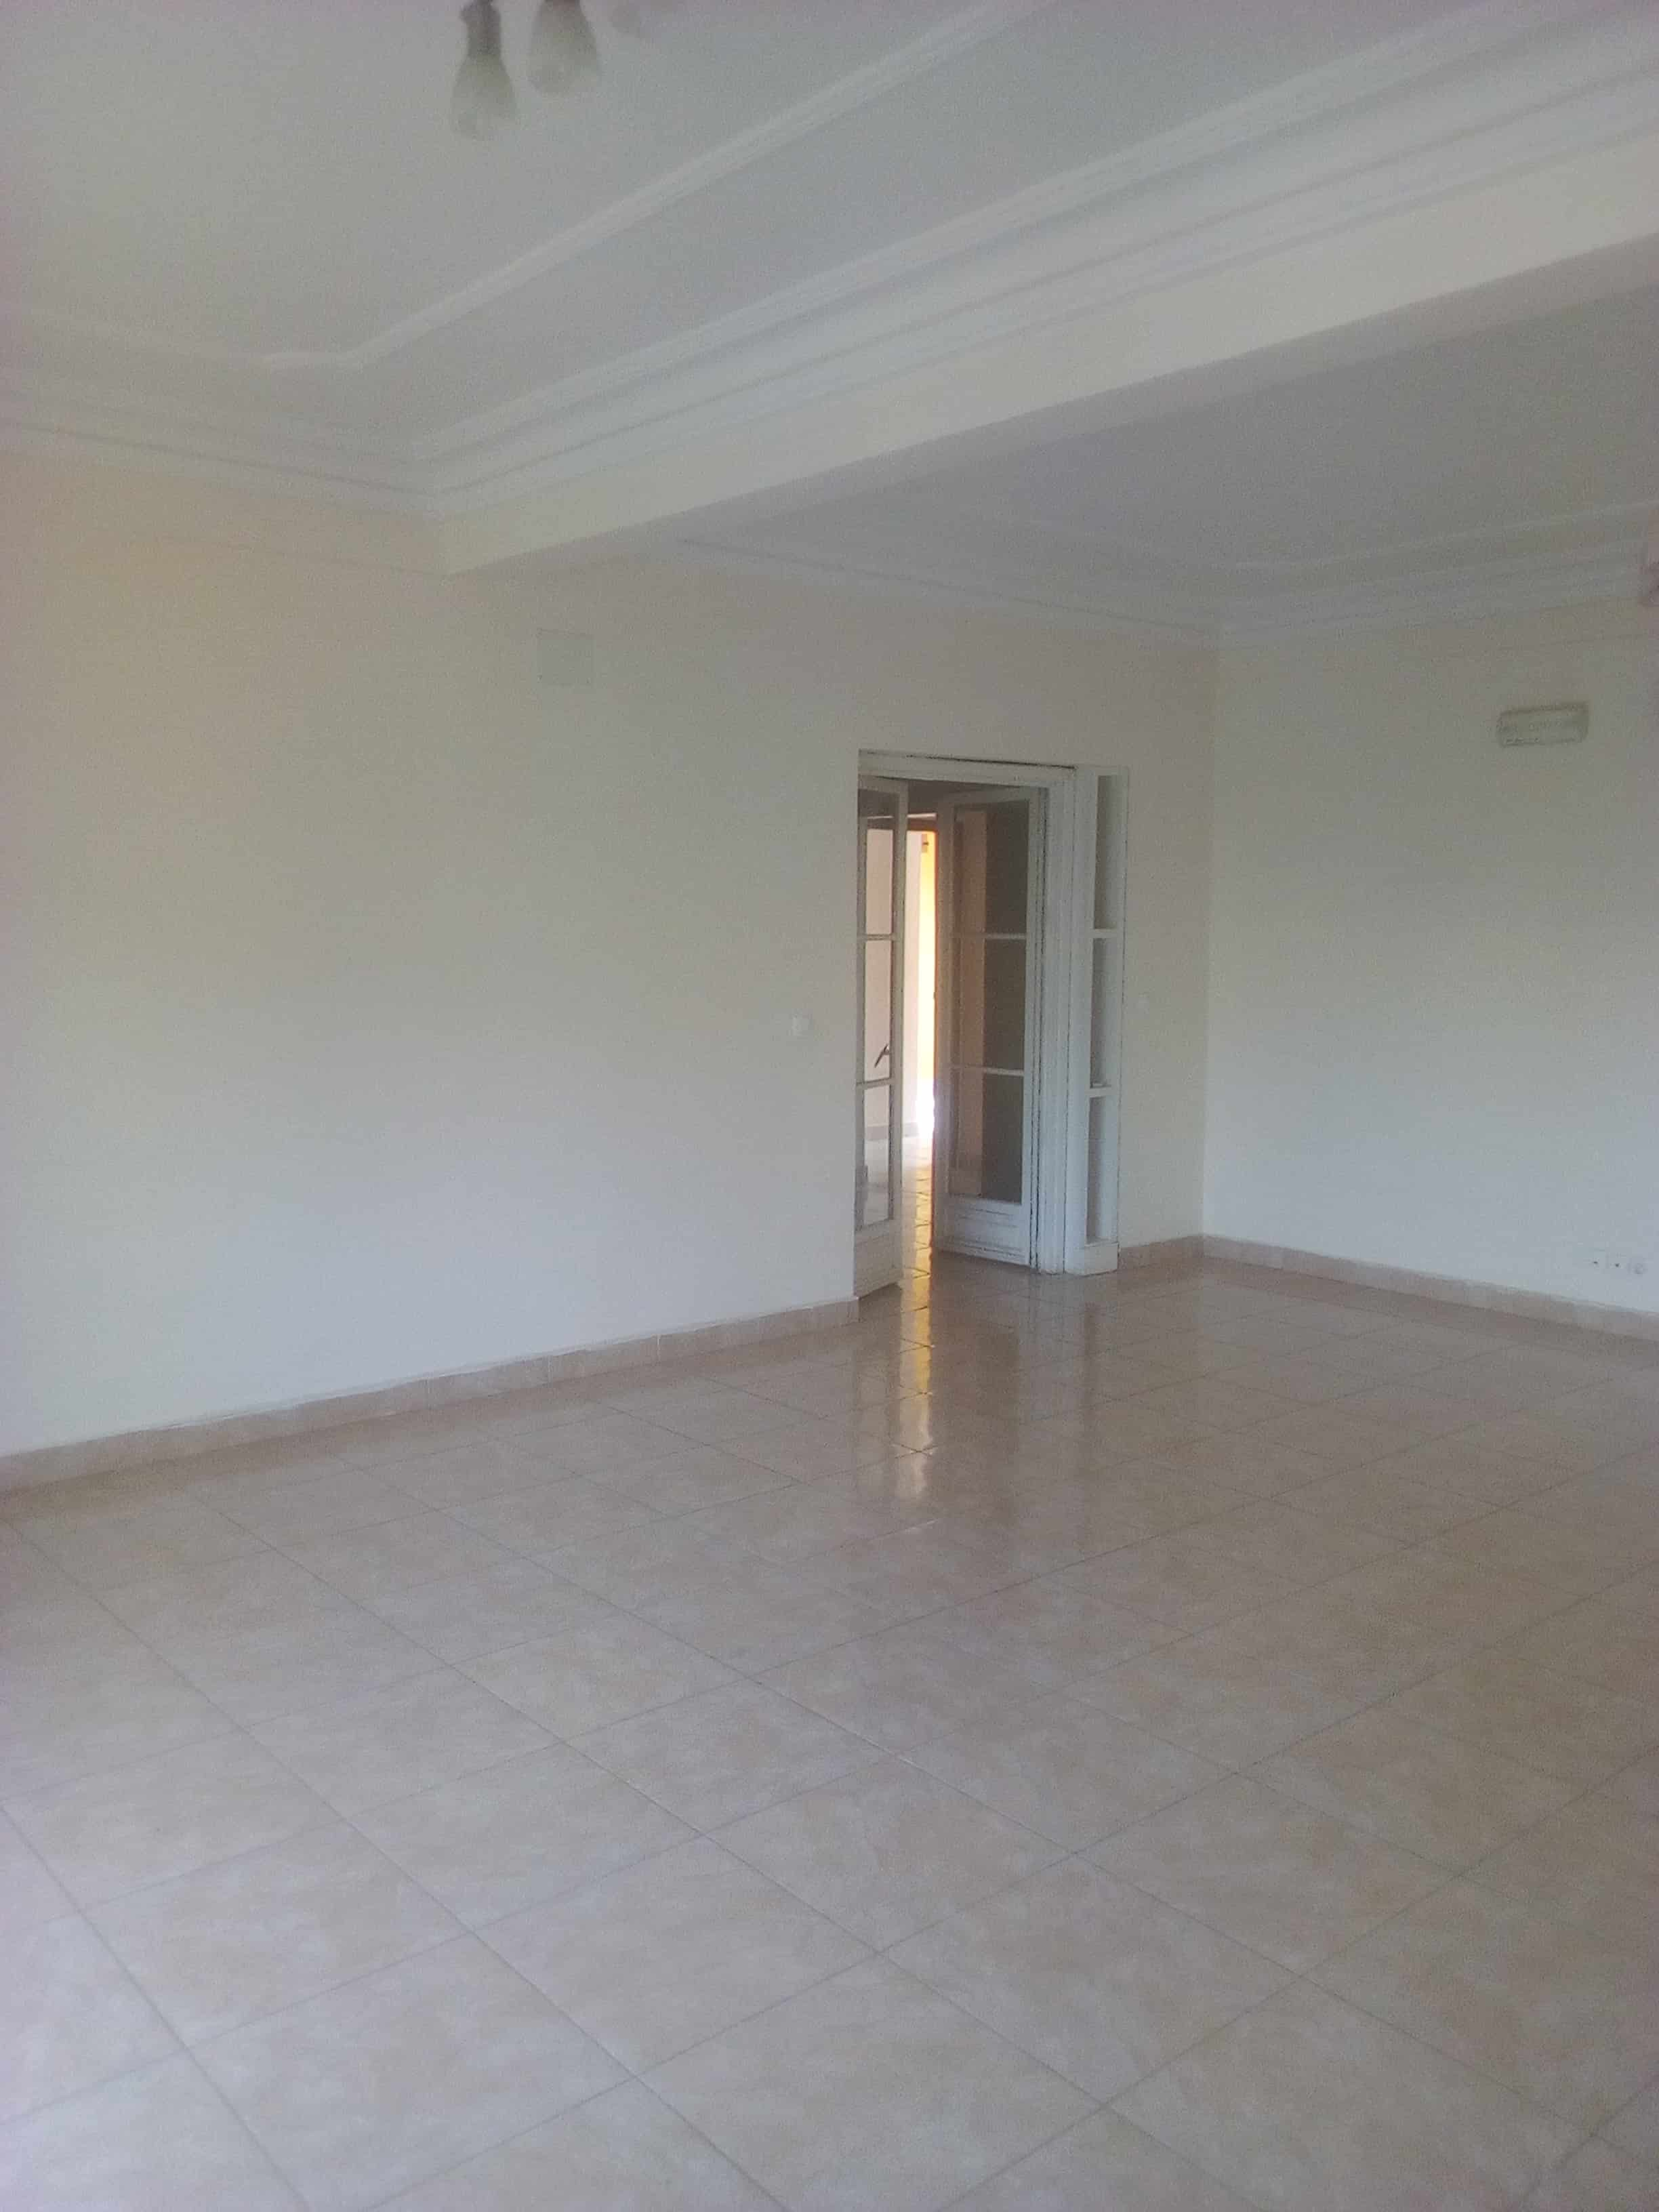 Apartment to rent - Yaoundé, Mfandena, Omnisport - 1 living room(s), 3 bedroom(s), 3 bathroom(s) - 400 000 FCFA / month